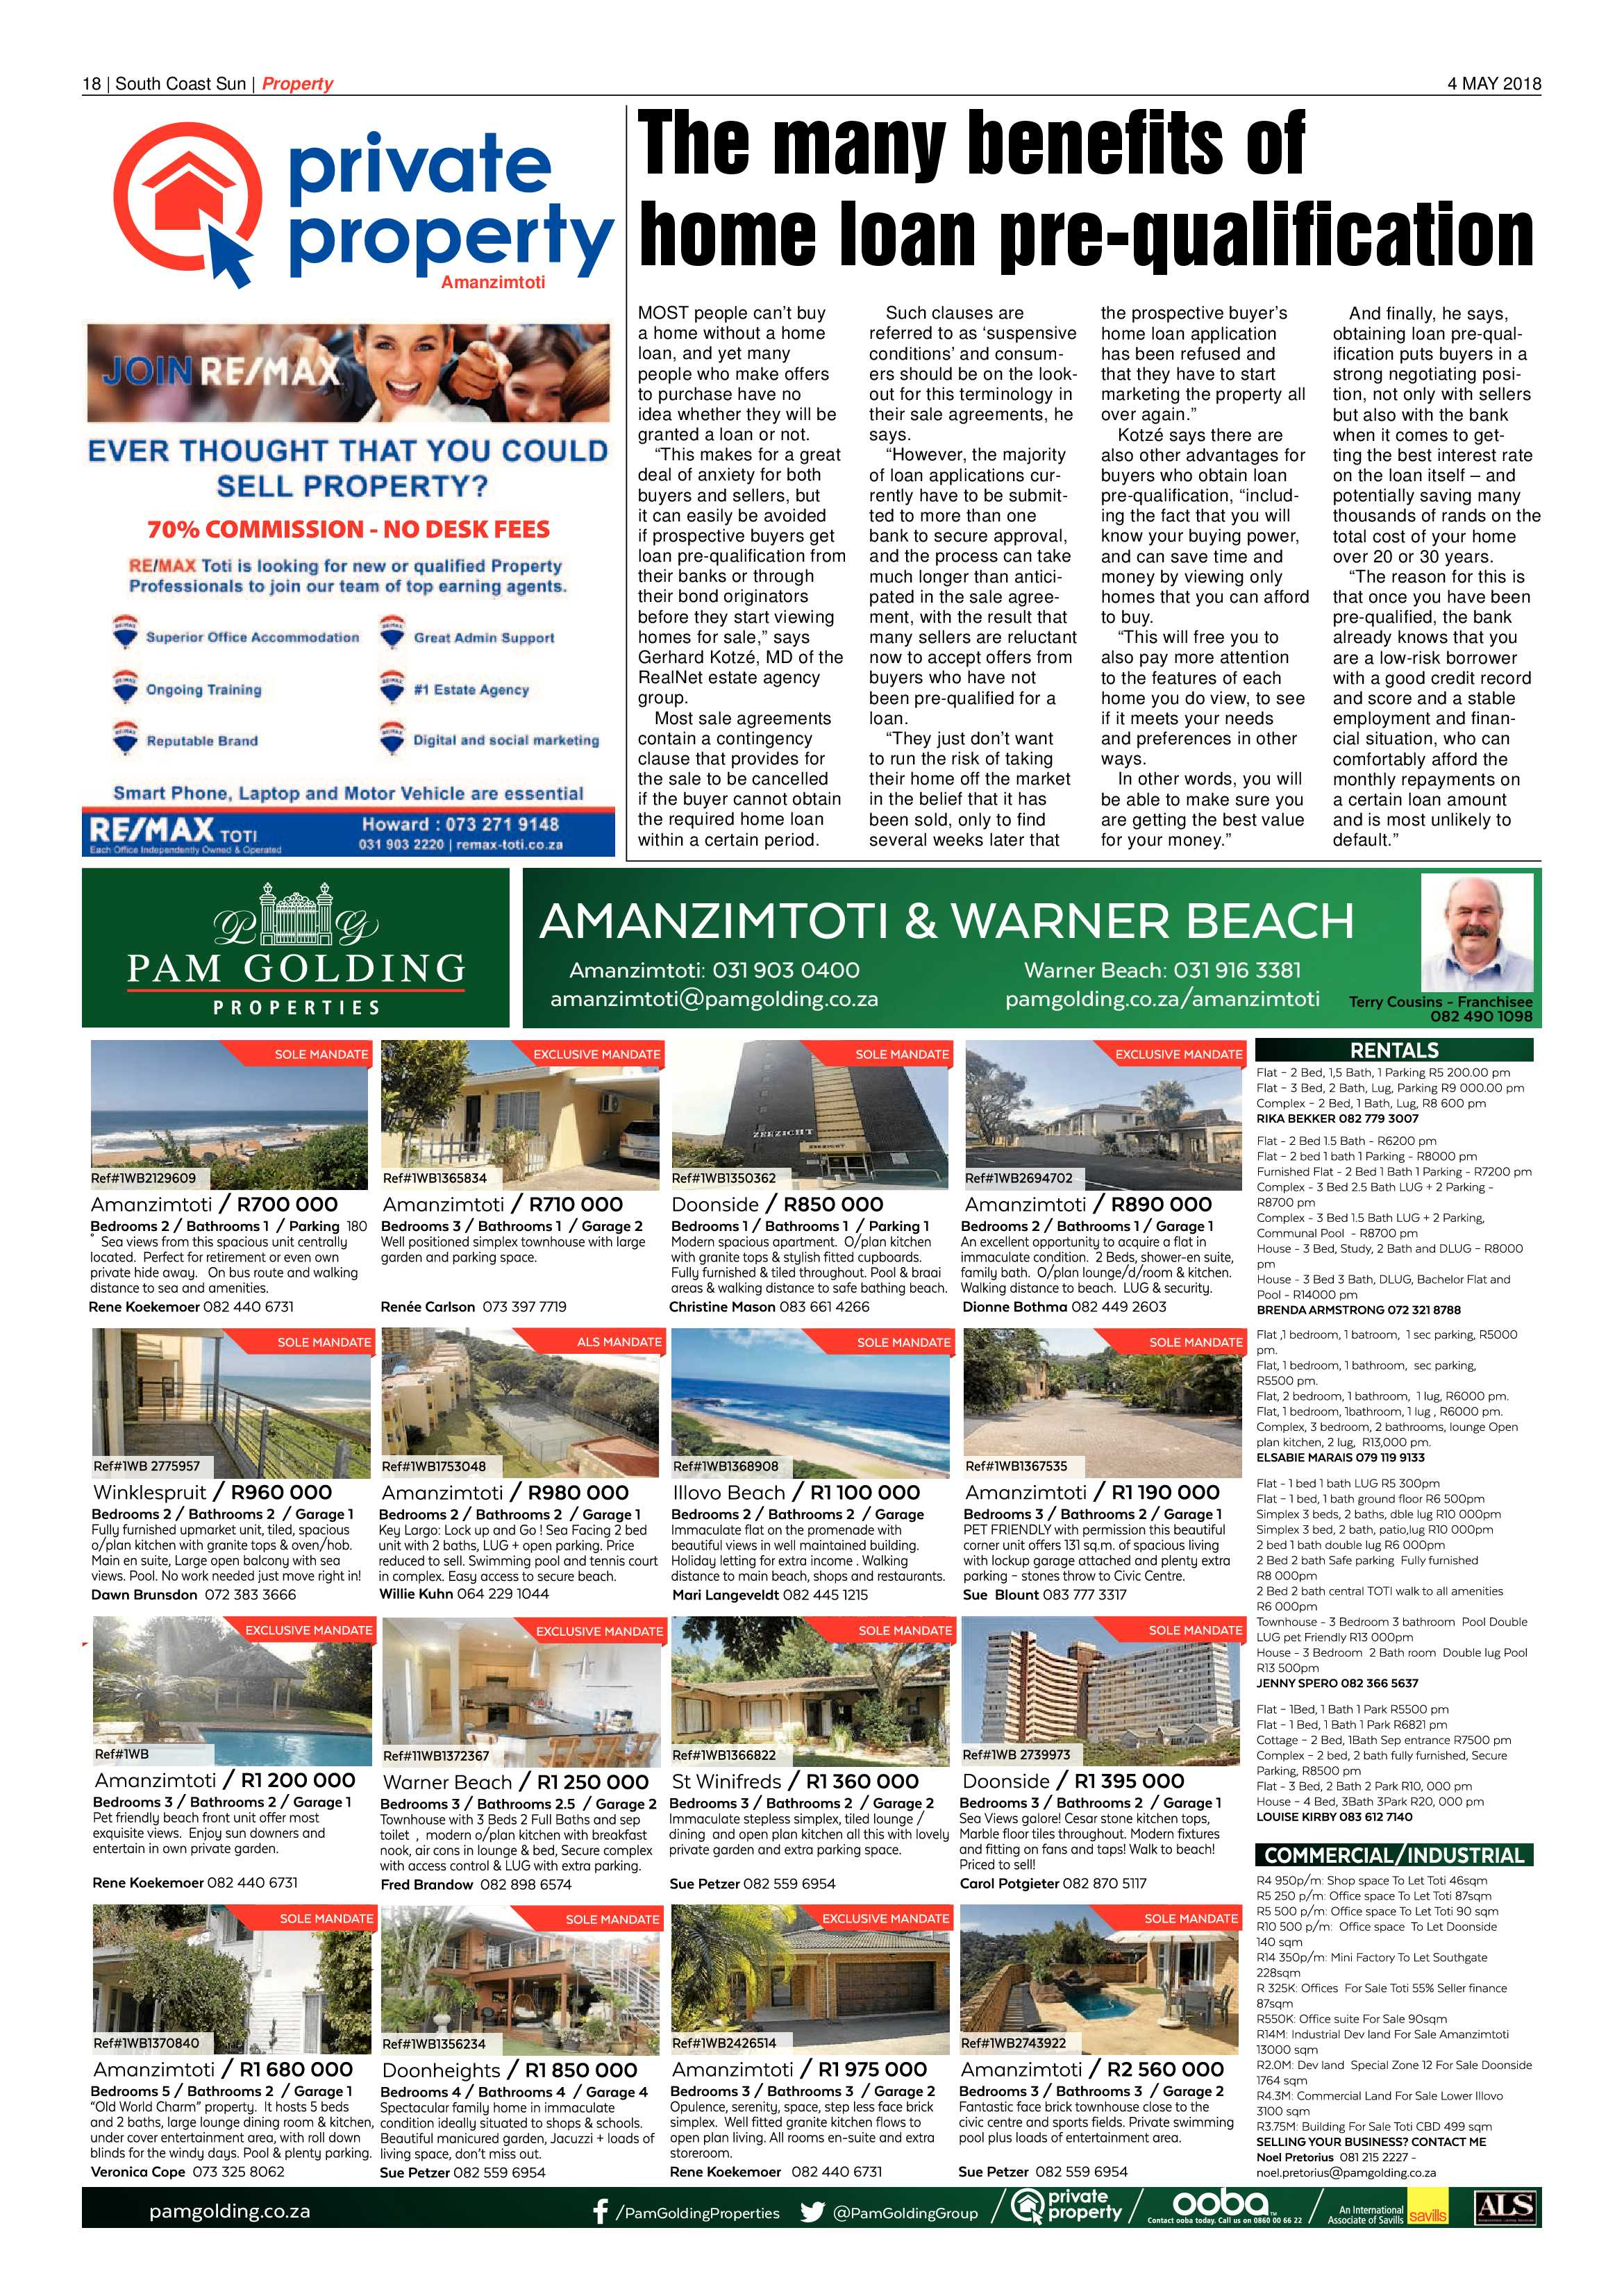 4-may-2018-epapers-page-18